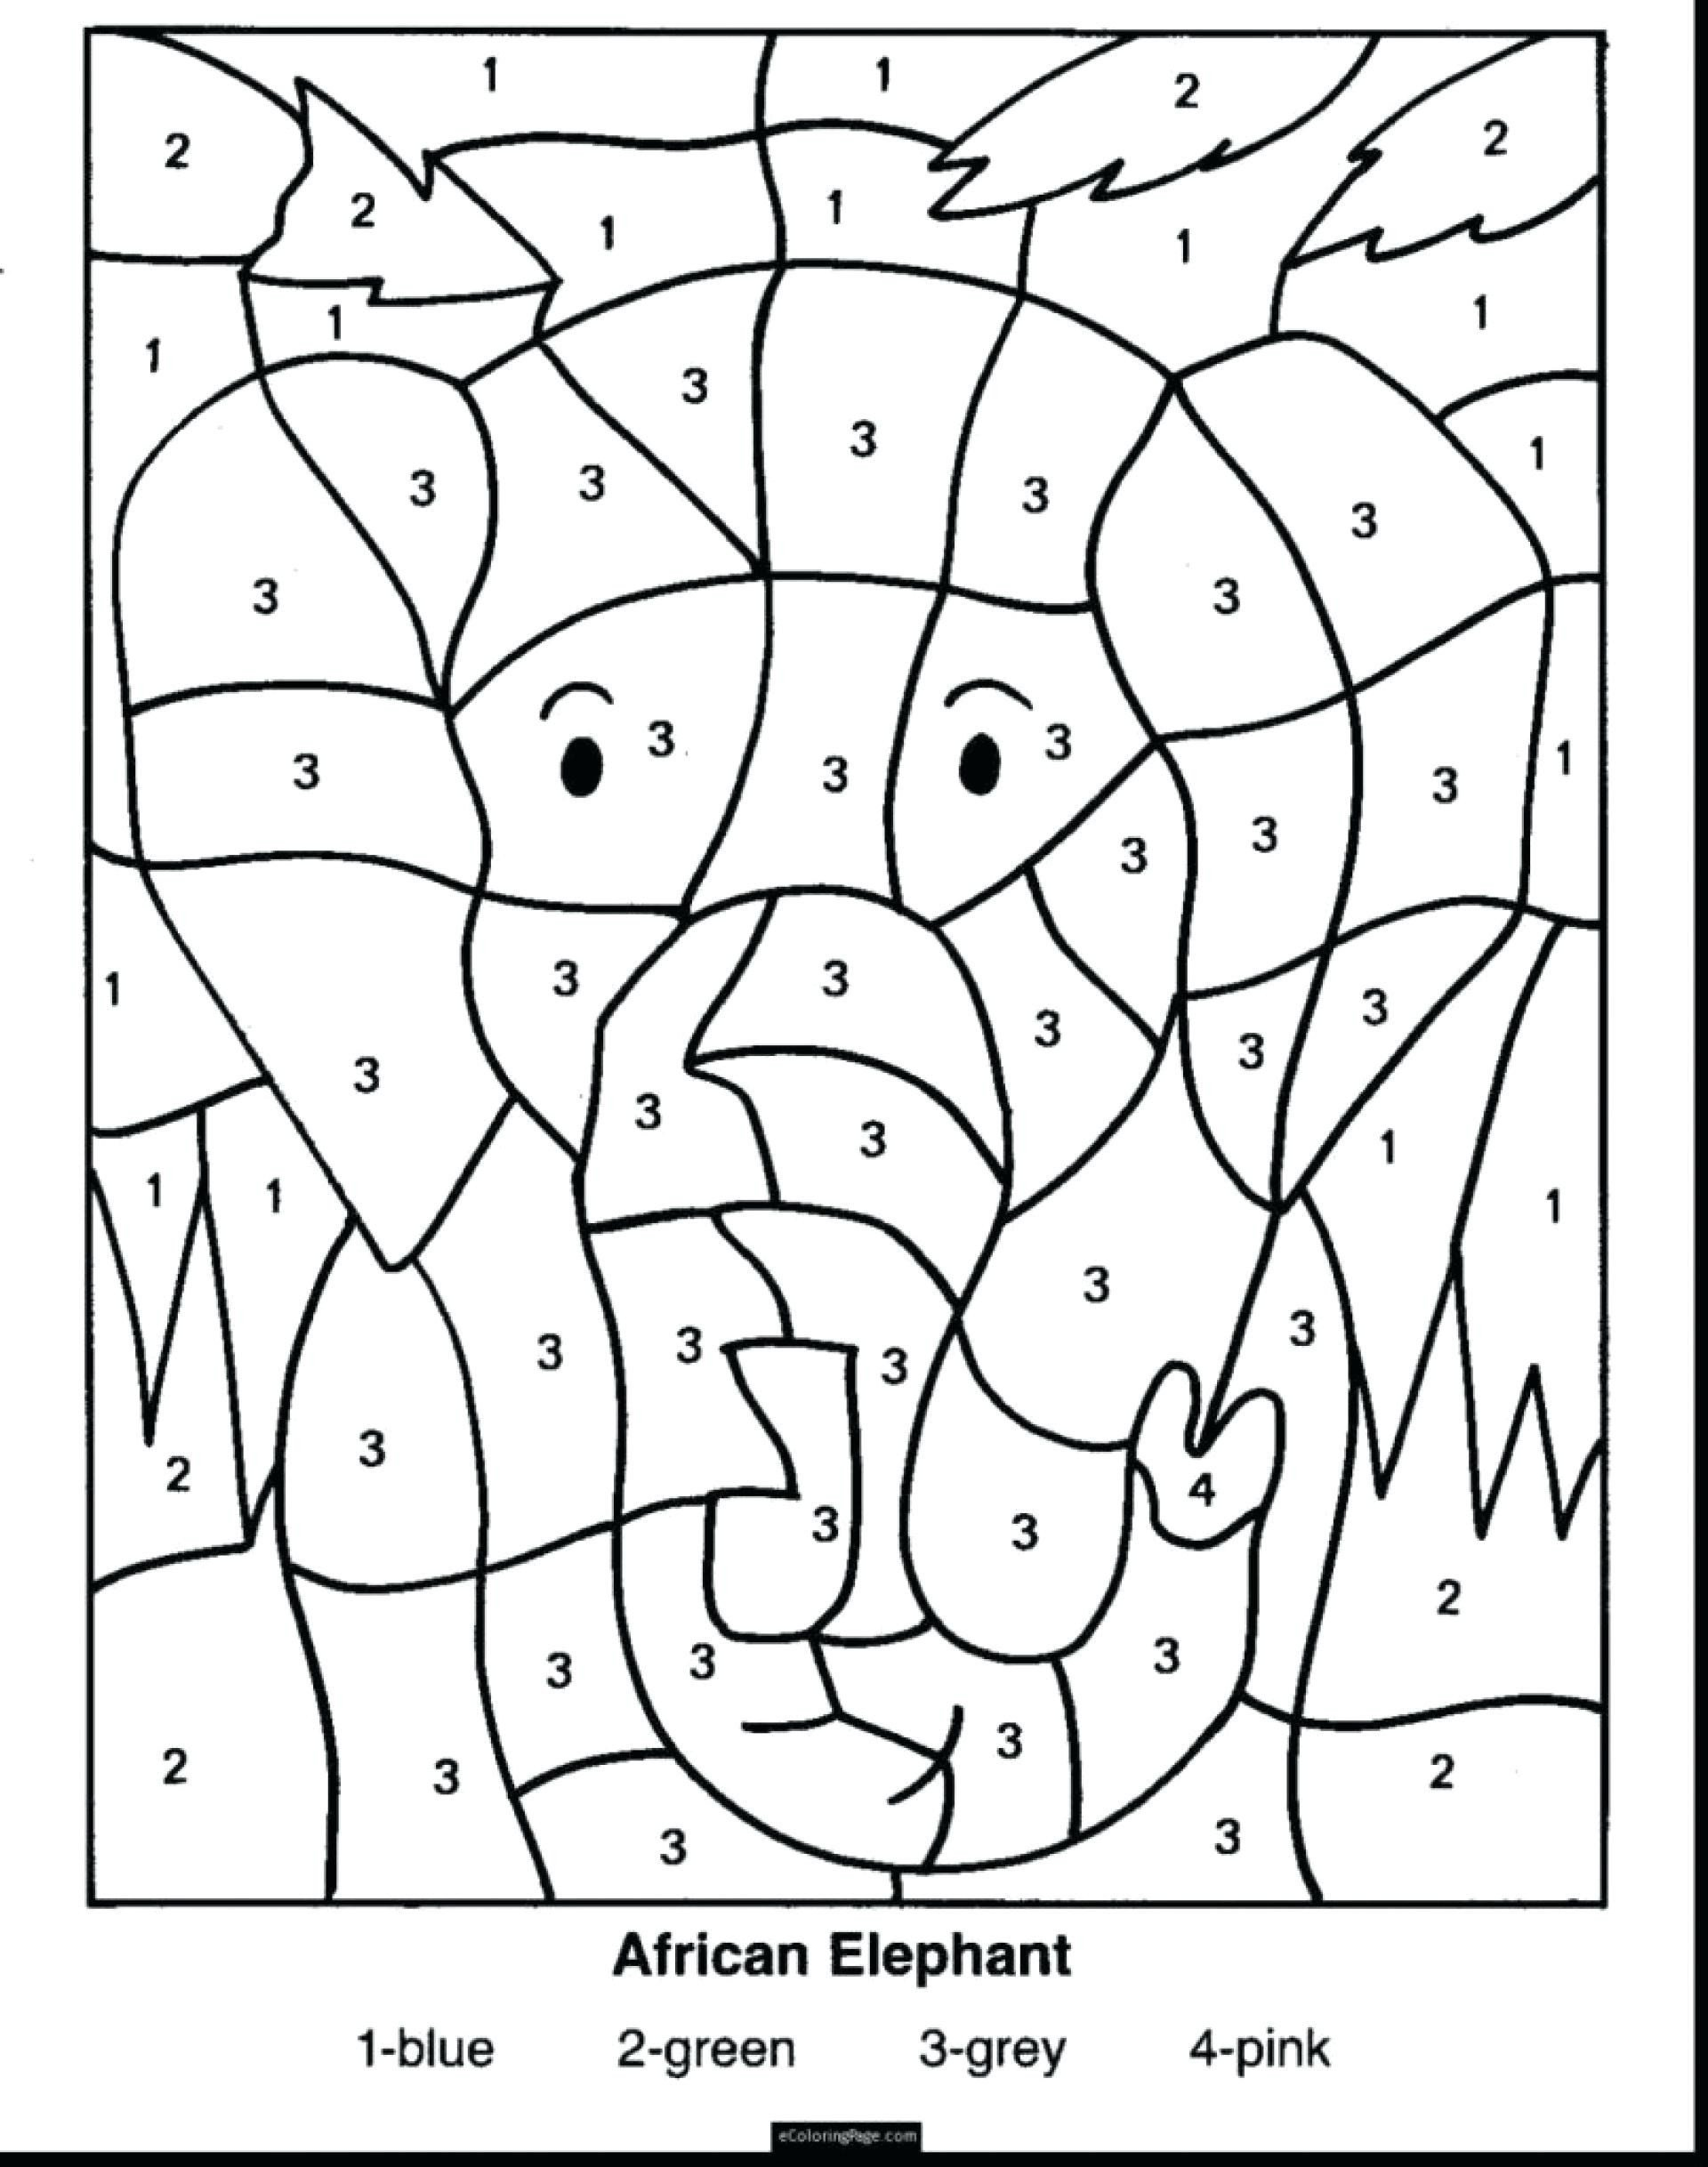 coloring pages free second grade math third problems online reading prehension printable worksheets word